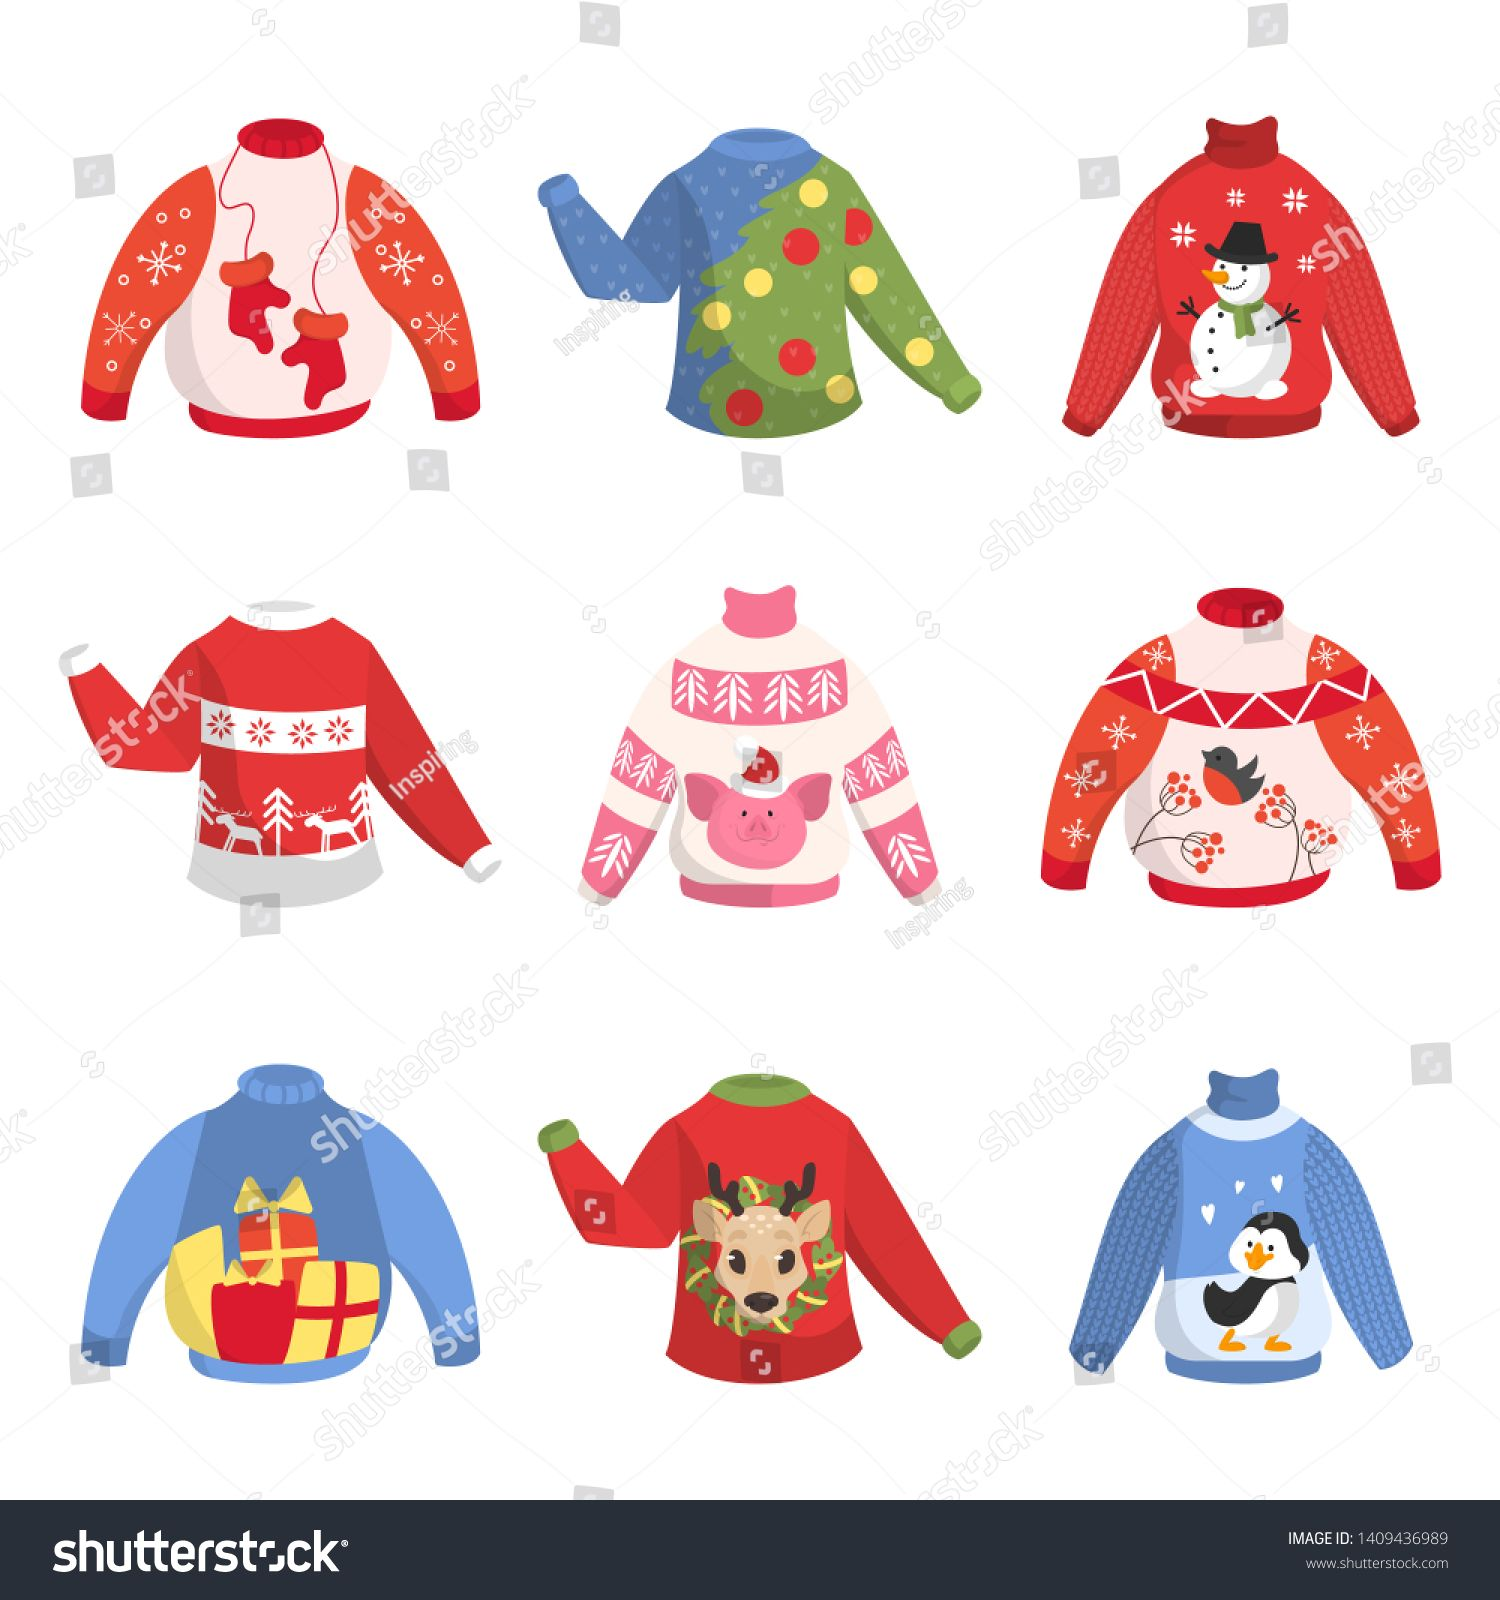 Cute warm christmas sweater for winter weather set